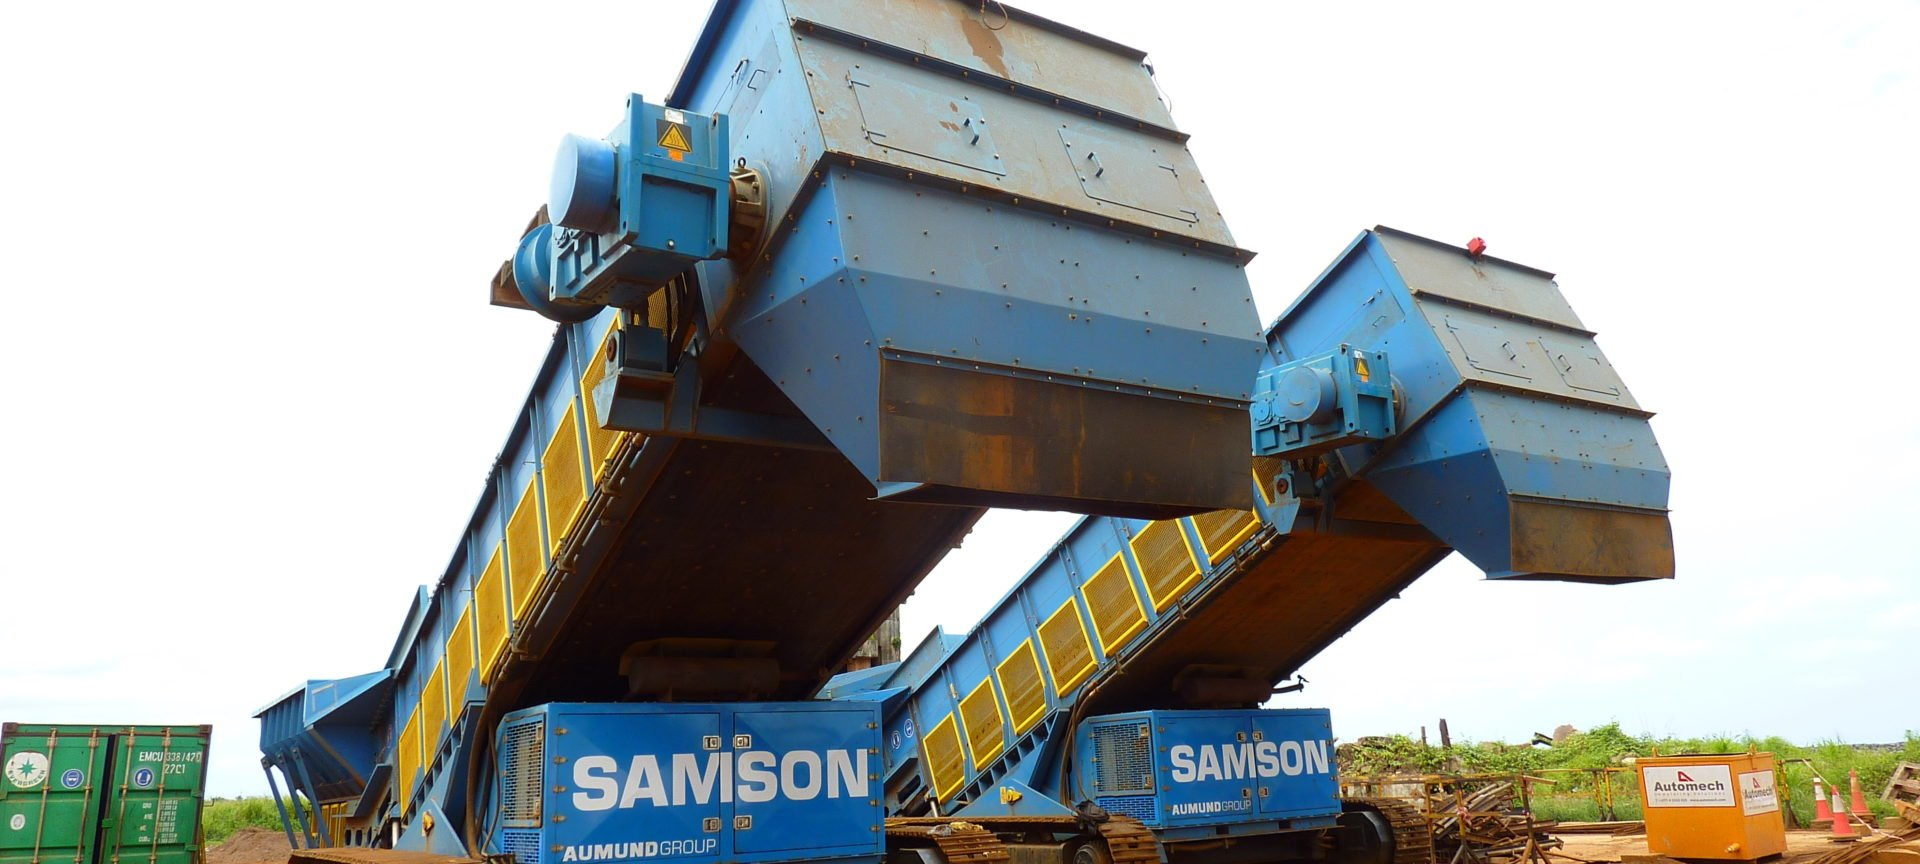 Mobile Samson Materialfoerderer in Parkposition